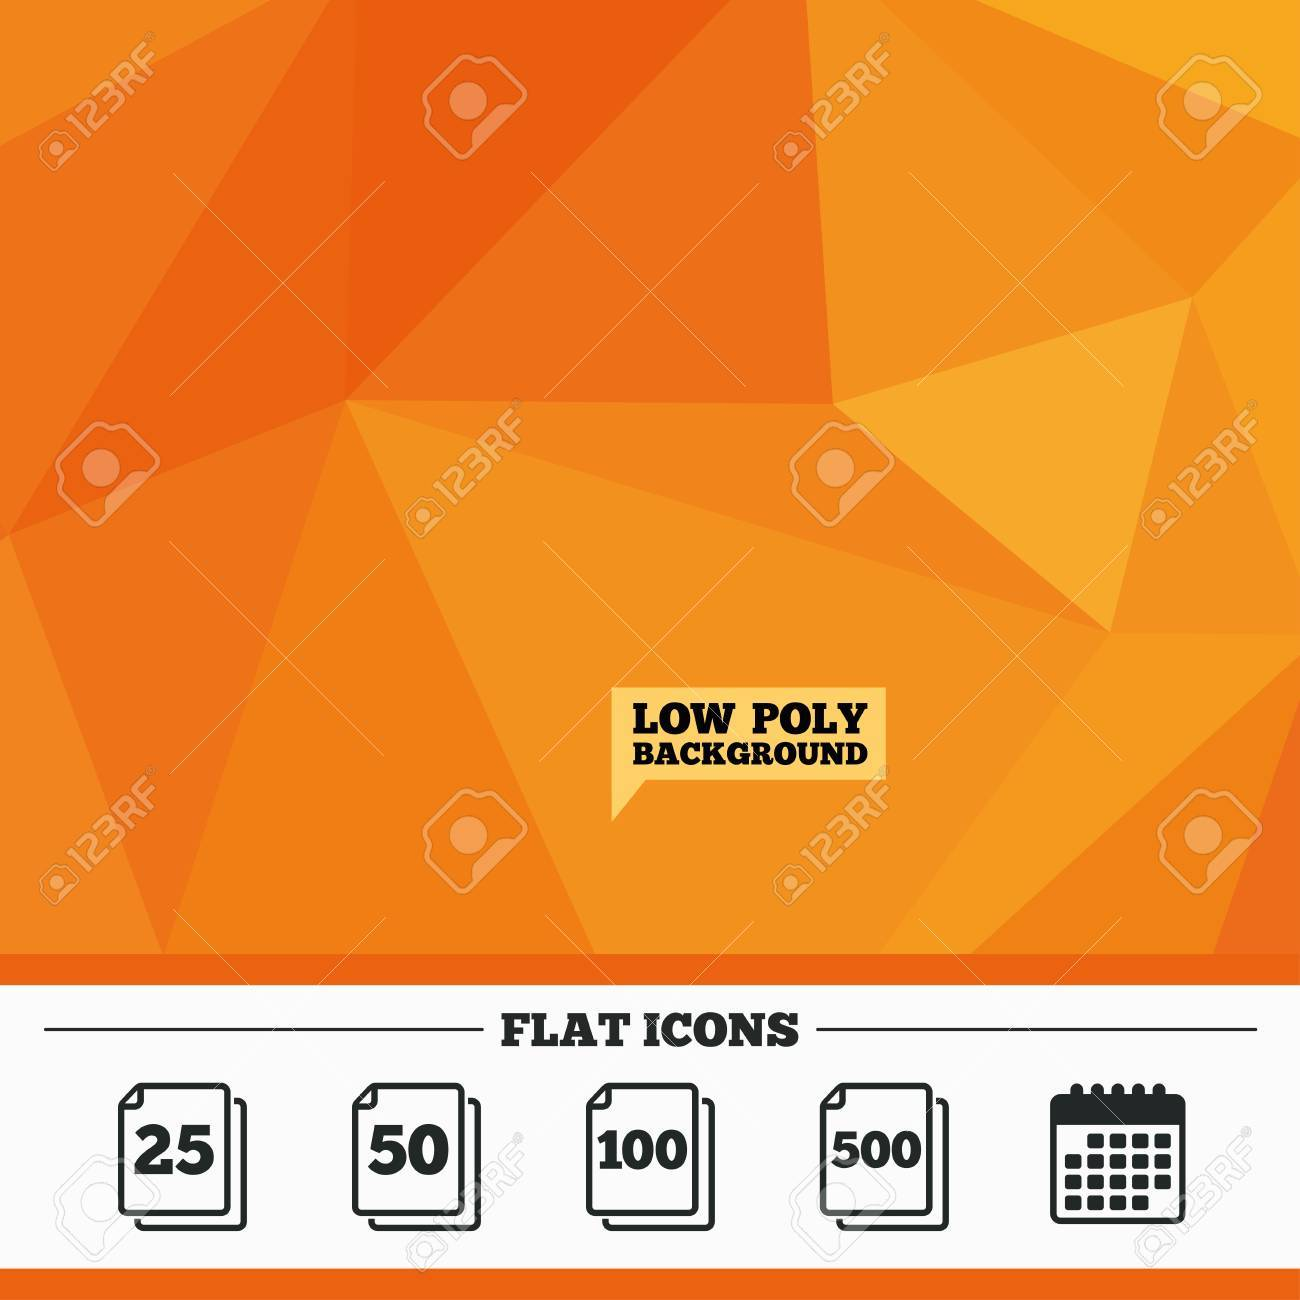 triangular low poly orange background in pack sheets icons quantity per package symbols